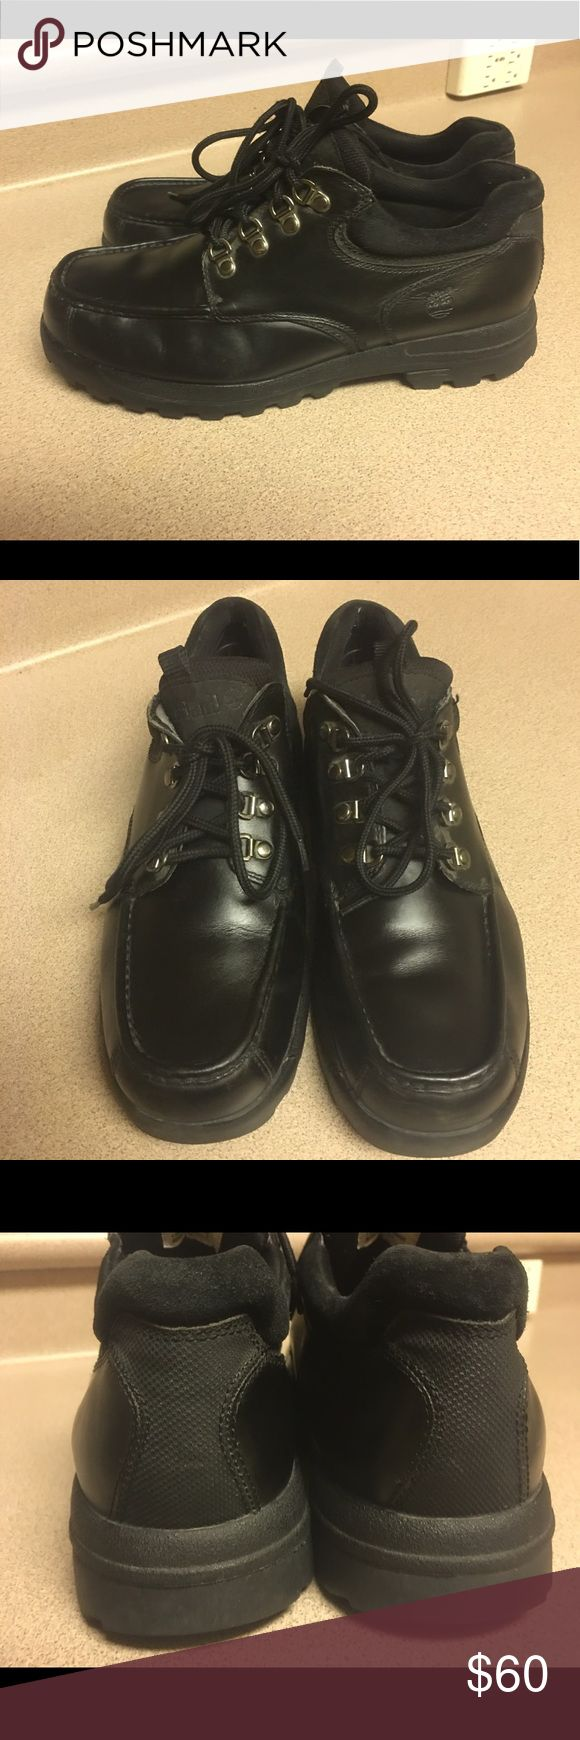 TIMBERLAND 81036 Mens 10.5M Black  Leather Low Cut Pre-owned TIMBERLAND 81036 Men's 10.5M Black  Leather Low Cut Timberland Shoes